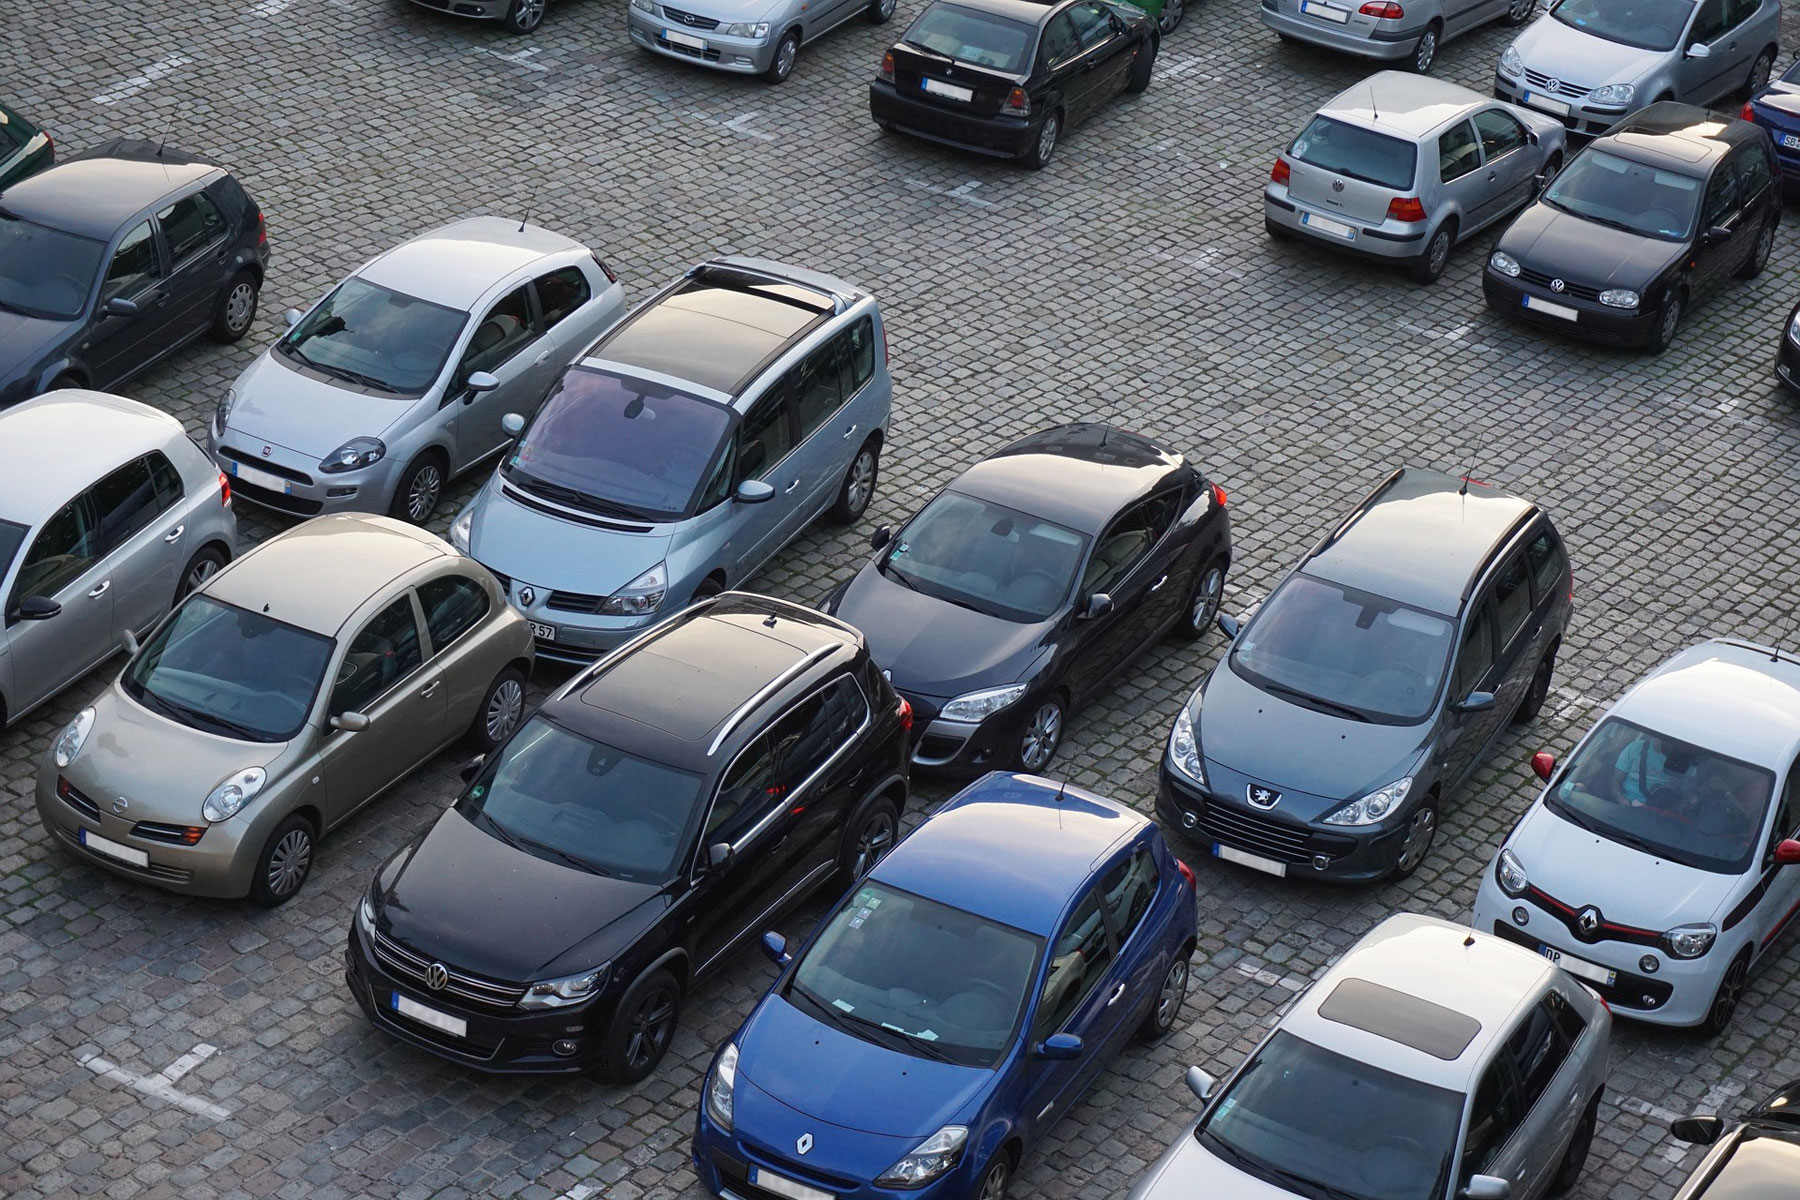 How to save money on parking  Motoring Research